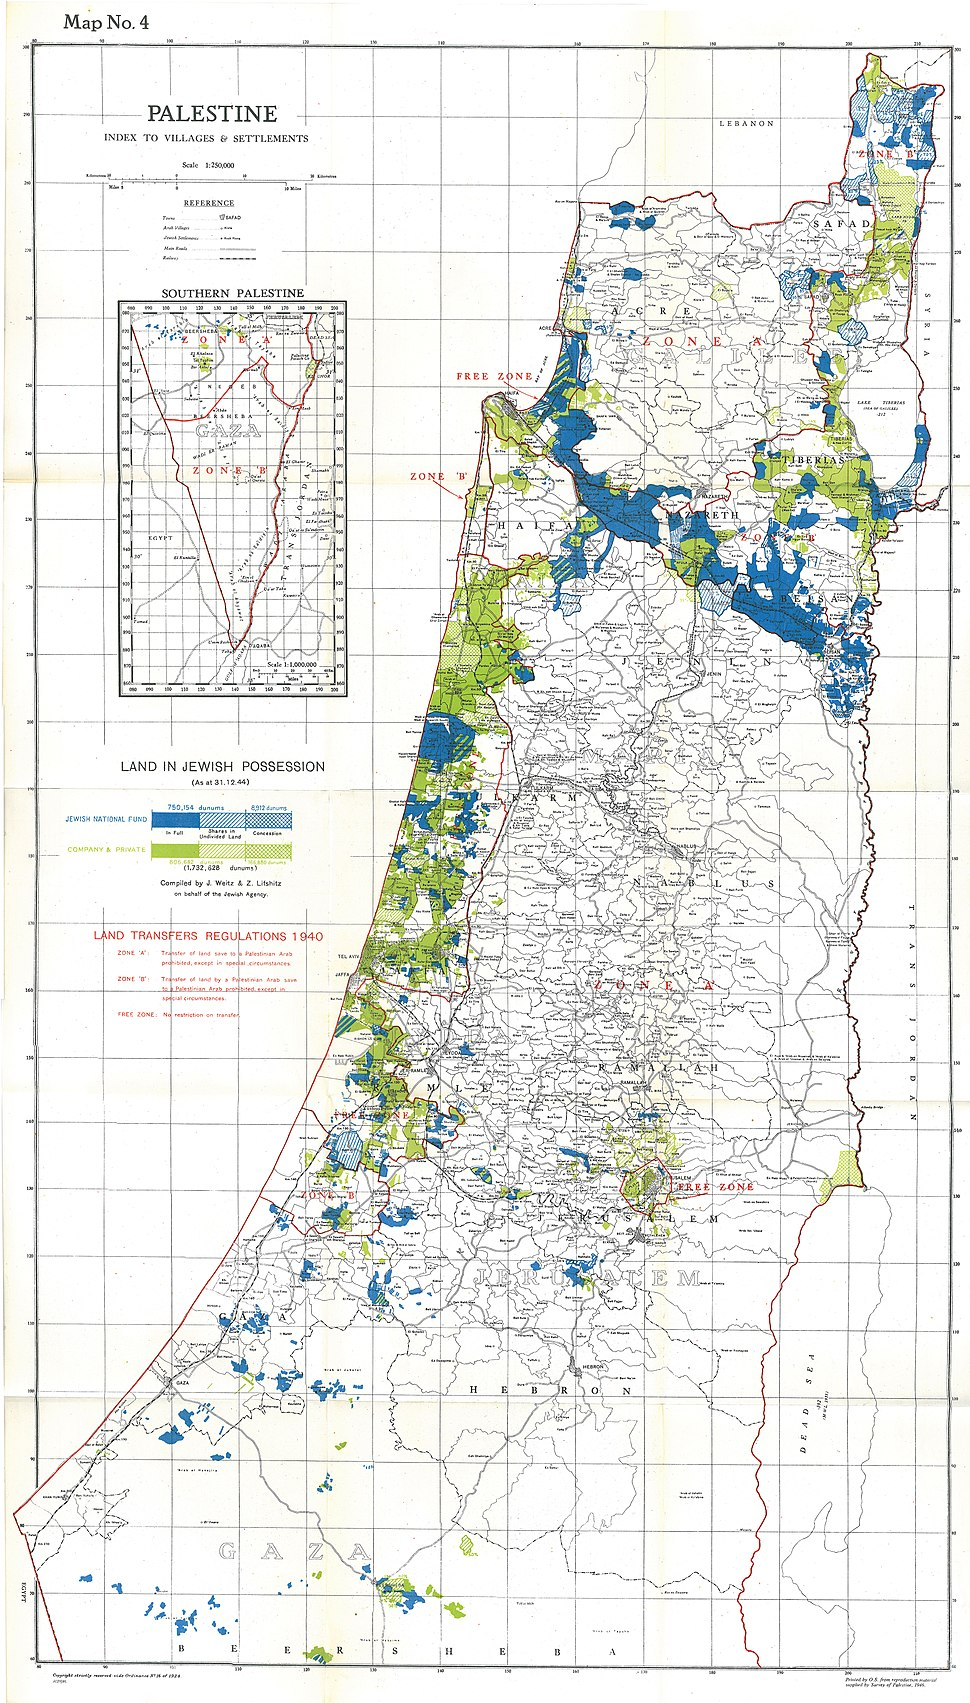 Palestine Index to Villages and Settlements, showing Land in Jewish Possession as at 31.12.44